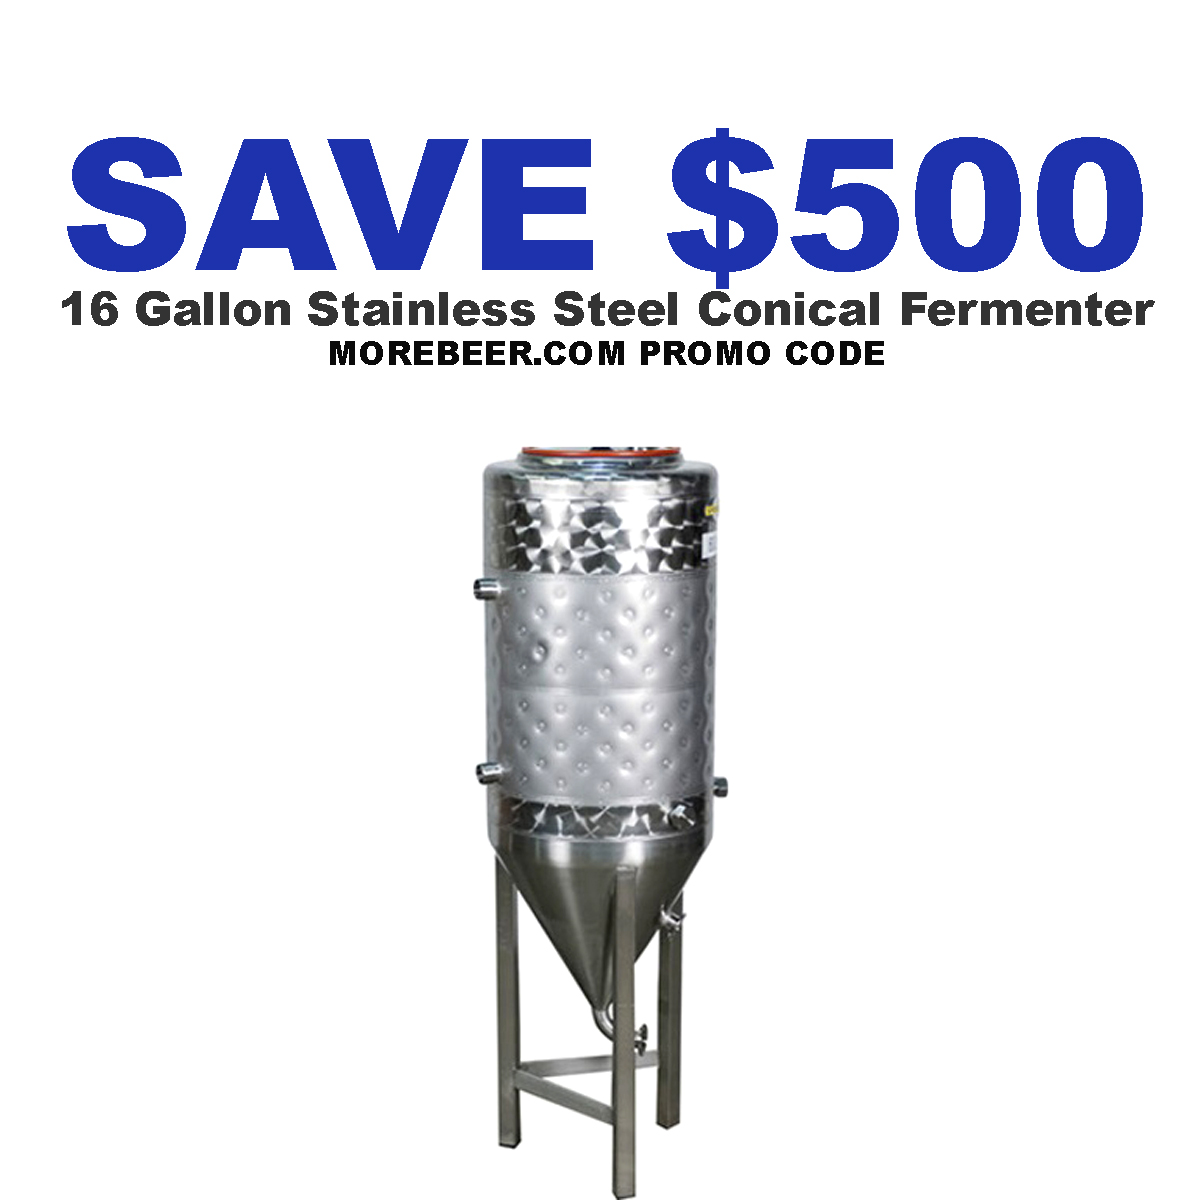 MoreBeer Save $500 on this jacketed 16 Gallon Stainless Steel Conical Fermenter at More Beer Coupon Code